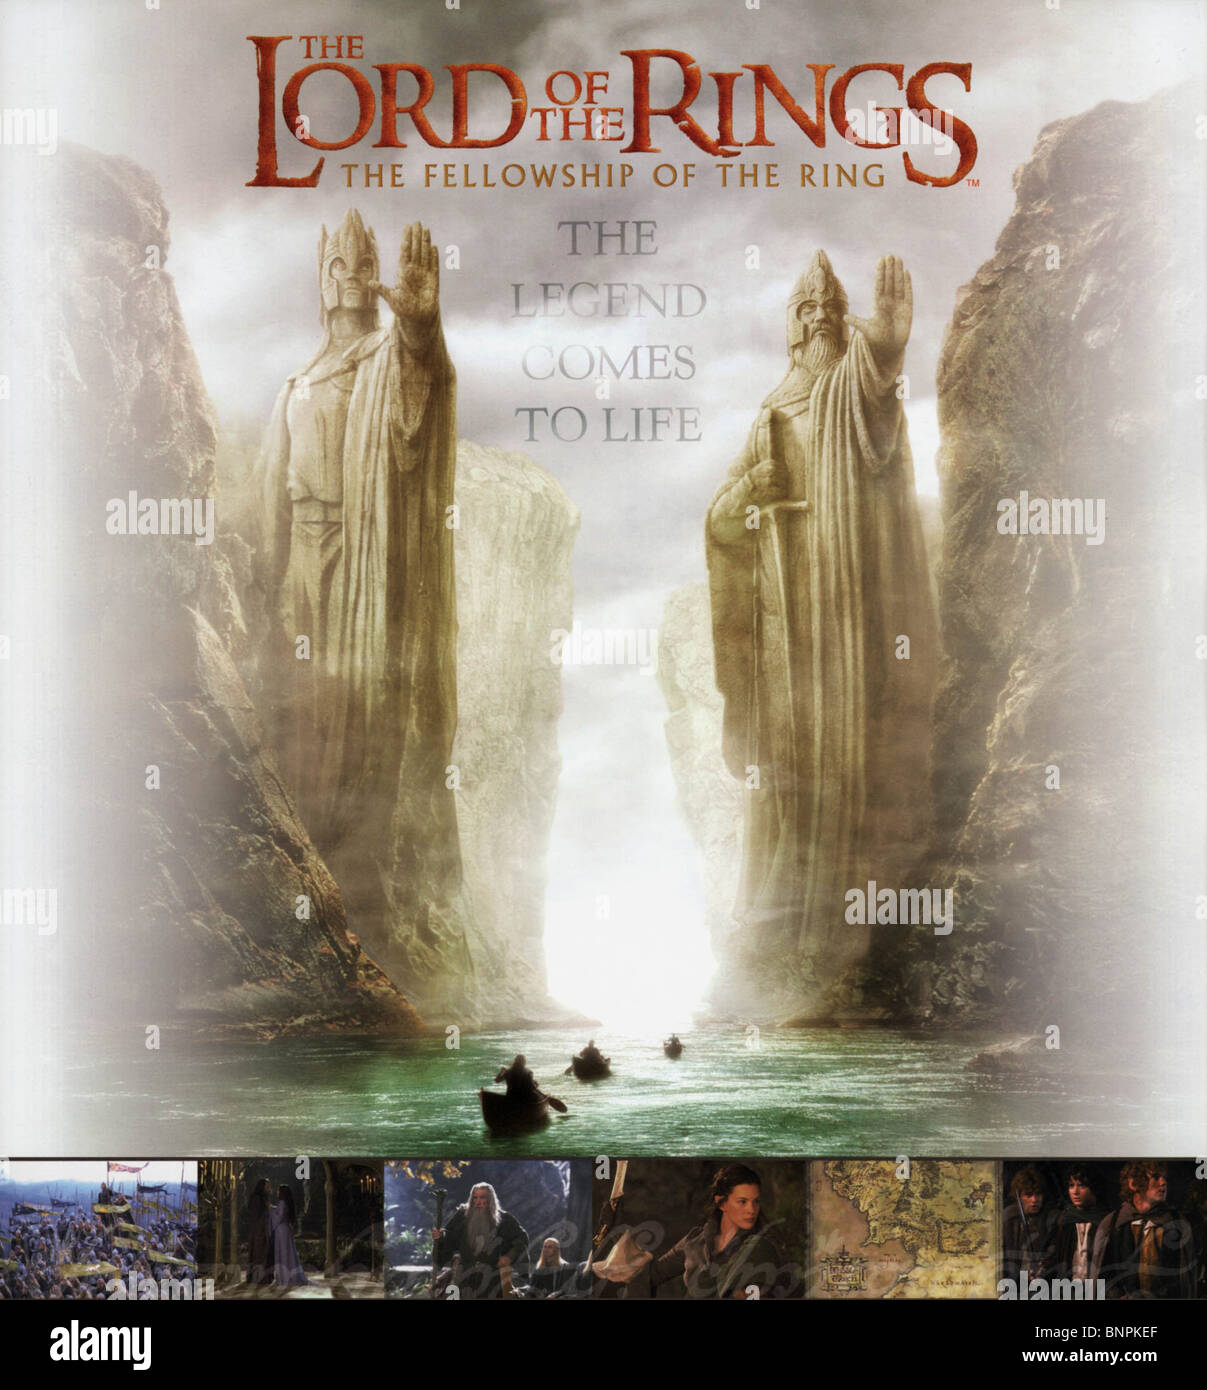 Film Poster The Lord Of The Rings The Fellowship Of The Ring 2001 Stock Photo Alamy